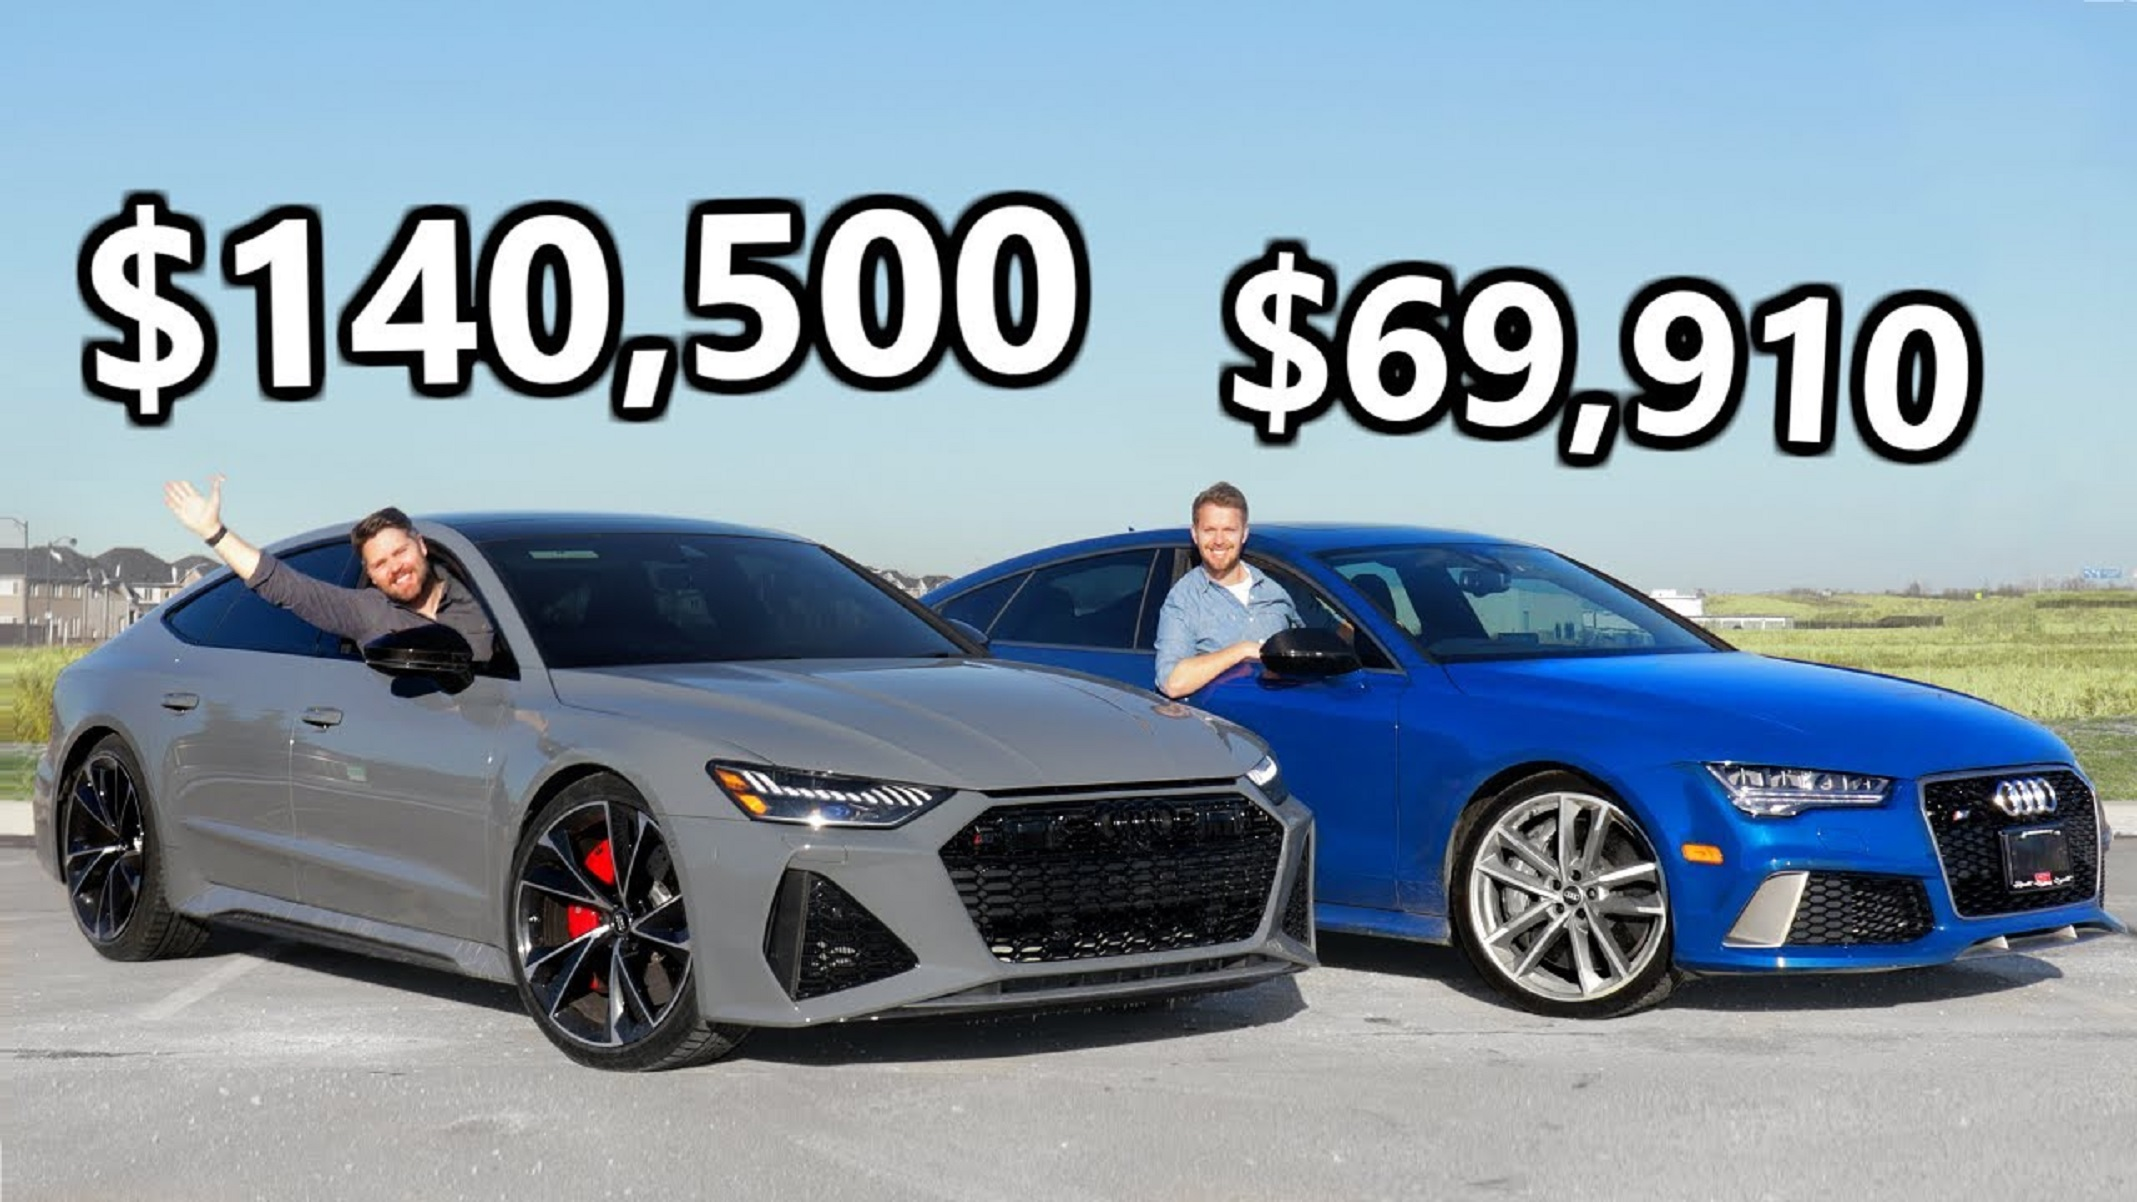 What S A Bargain Version Of A 2021 Audi Rs7 A 2016 Rs7